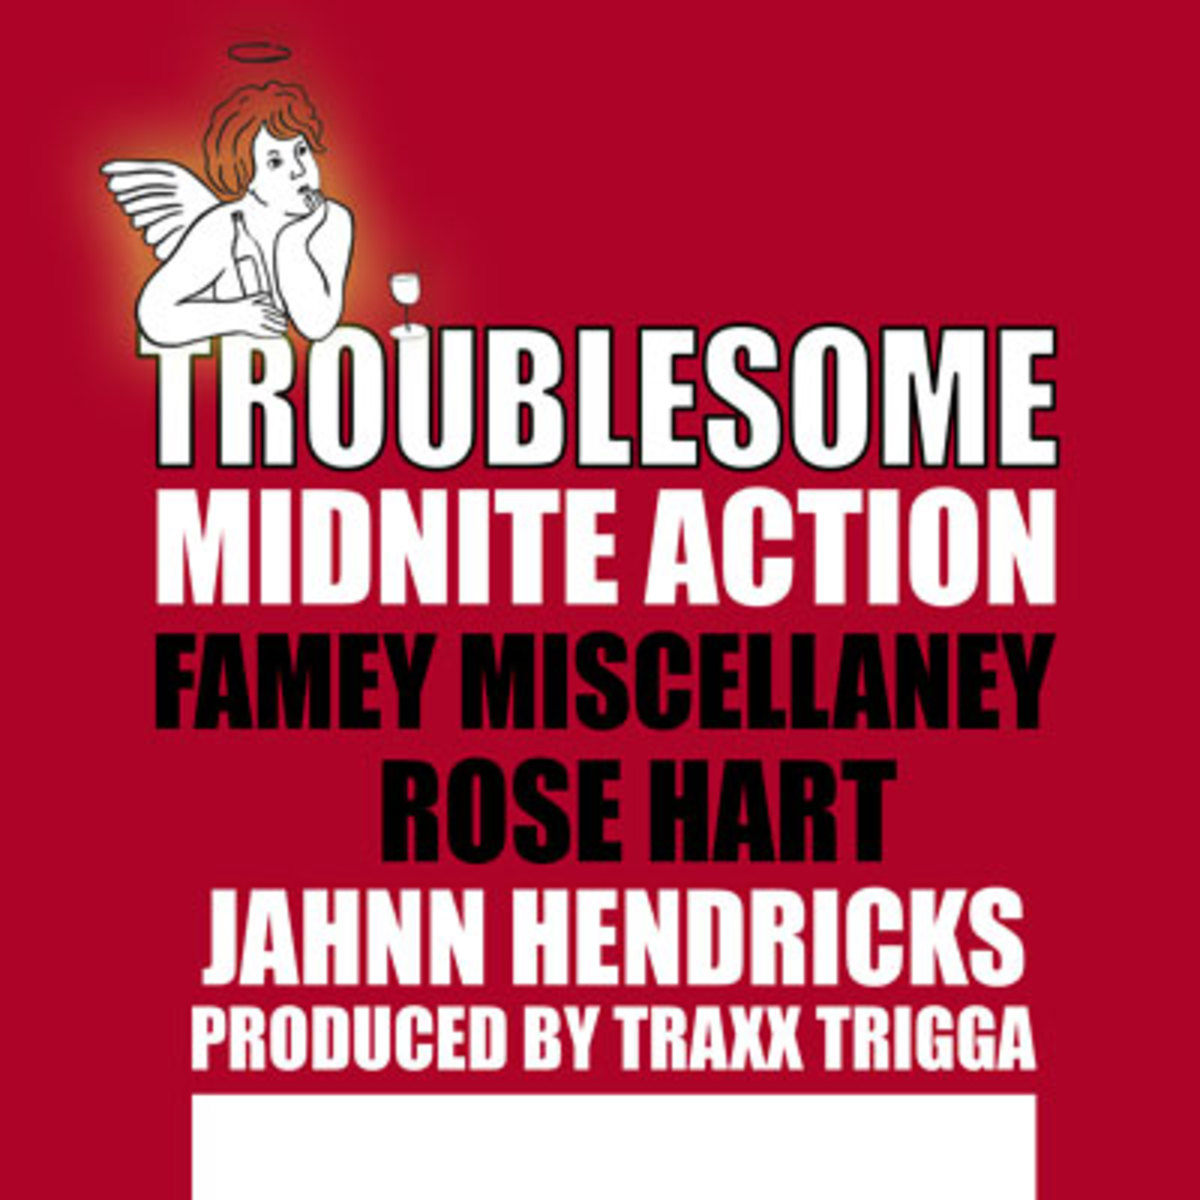 midniteaction-troublesome.jpg